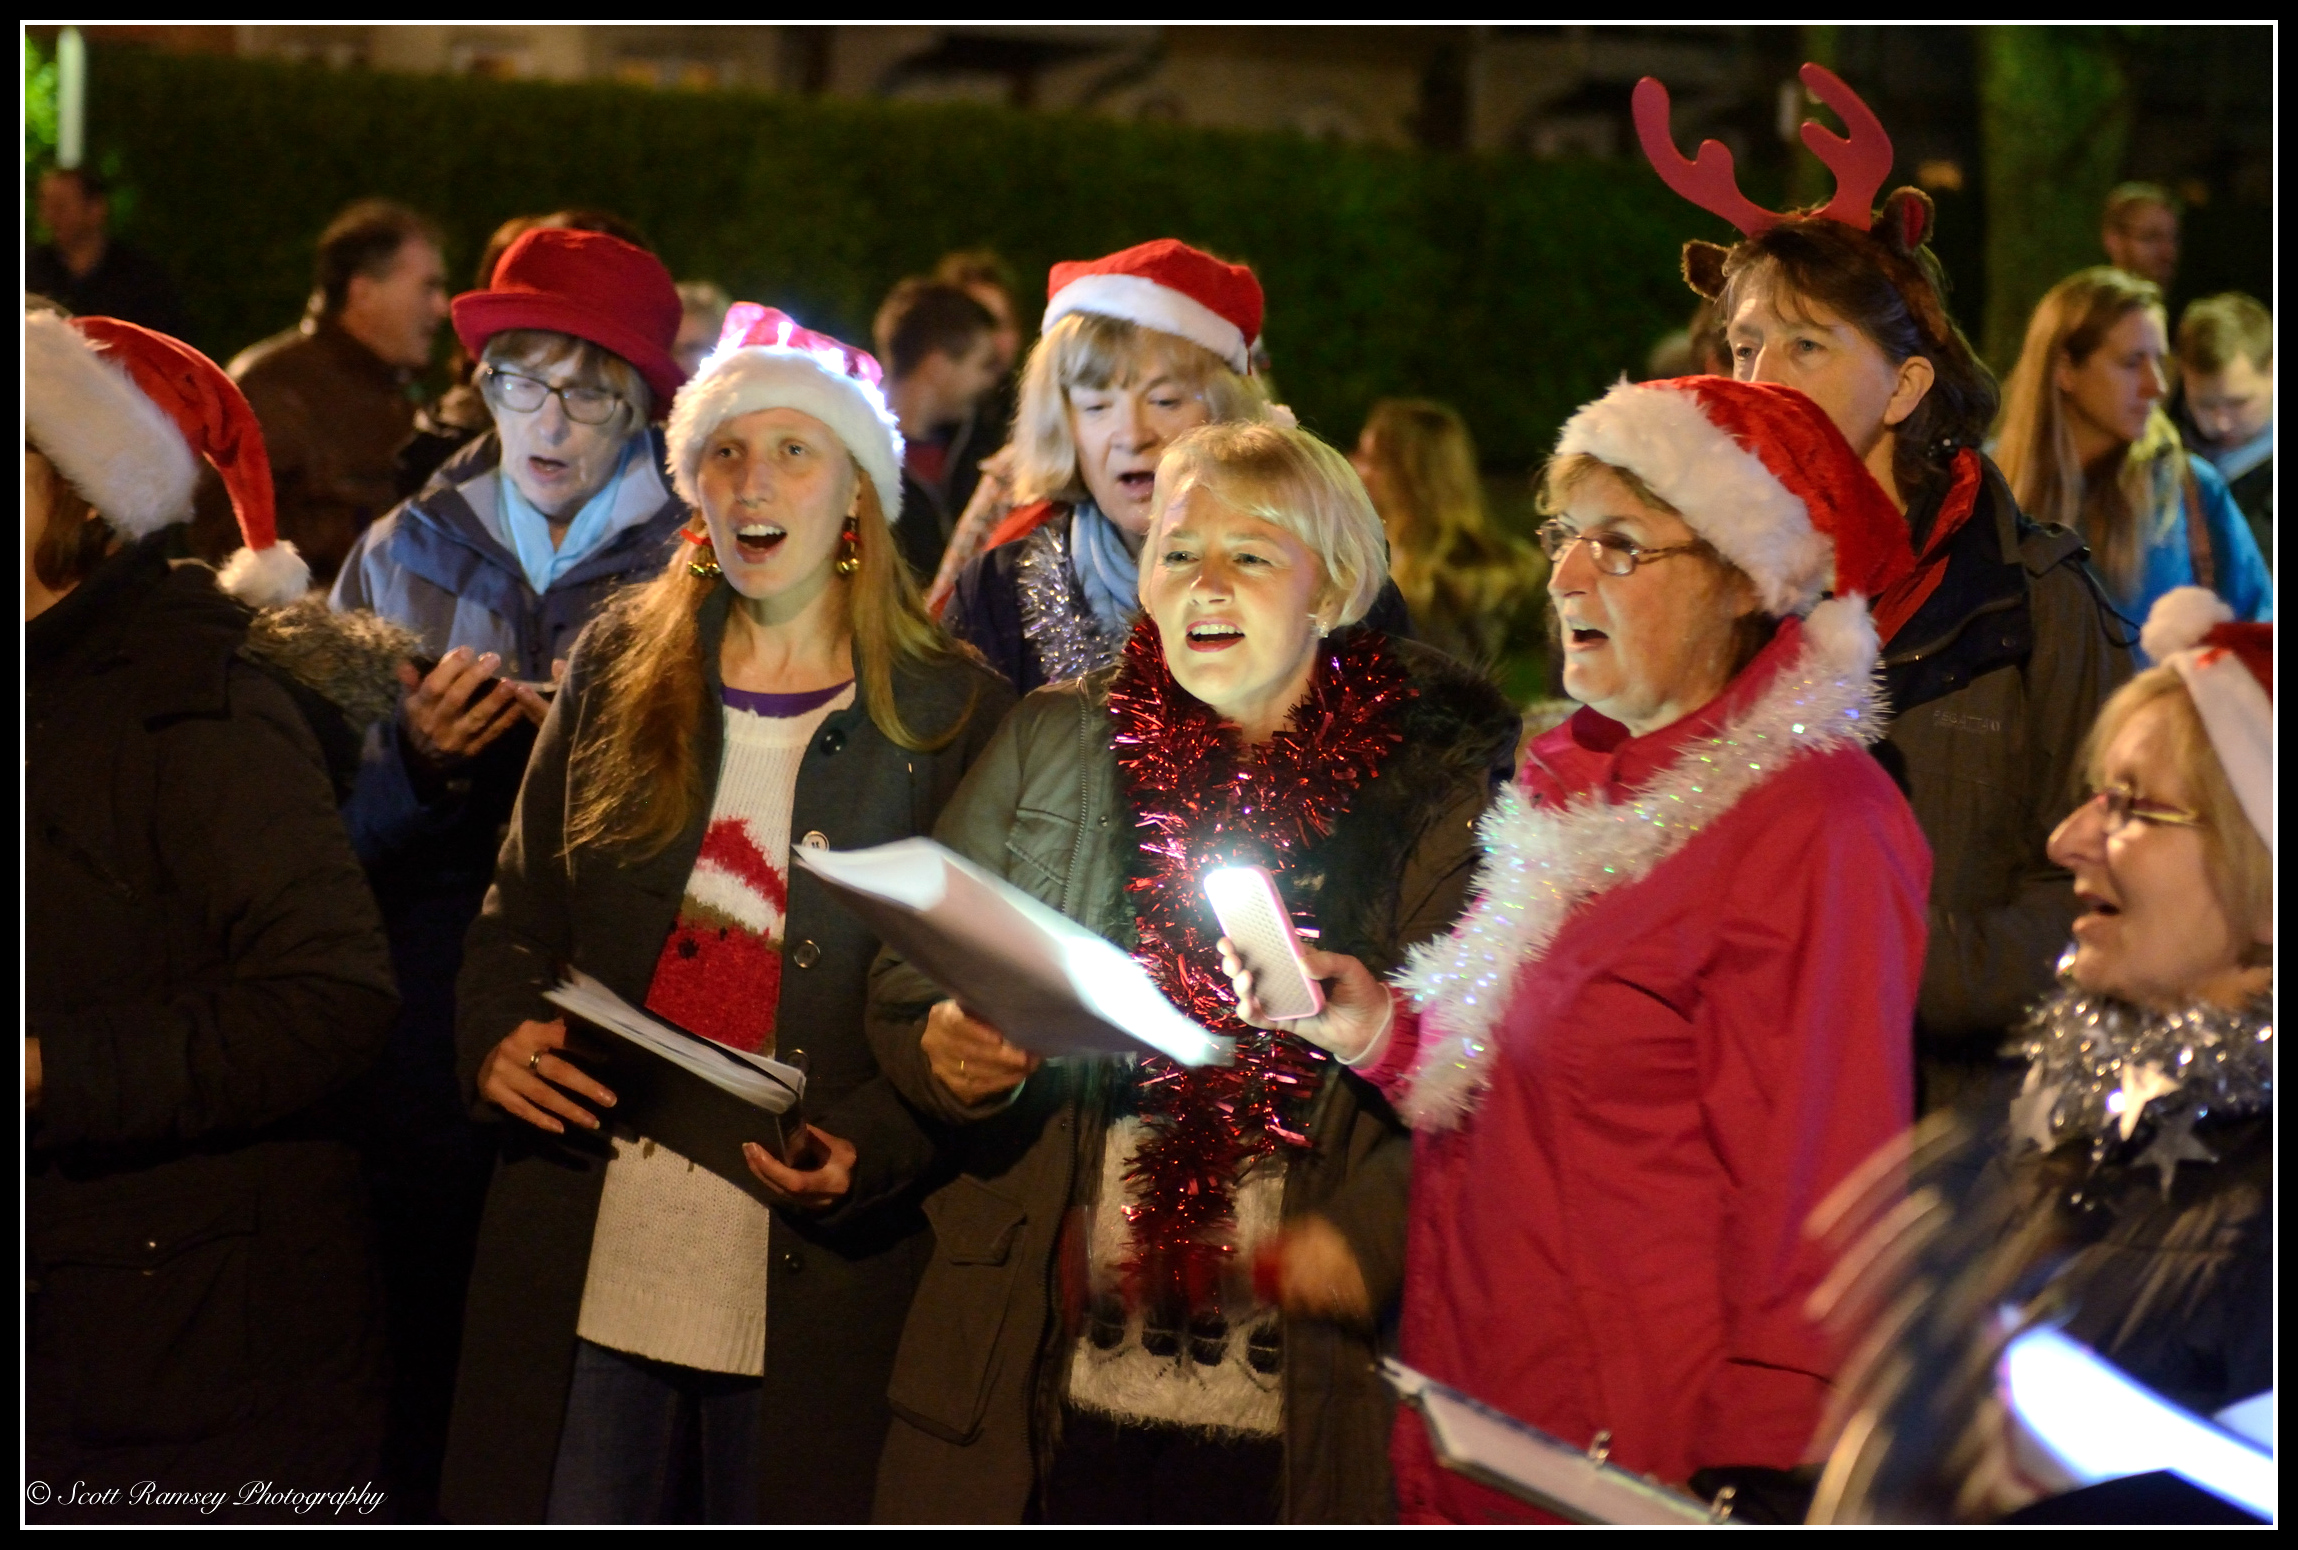 Carol singers sing traditional carols during the Christmas Celebrationsevent in East Preston, West Sussex.